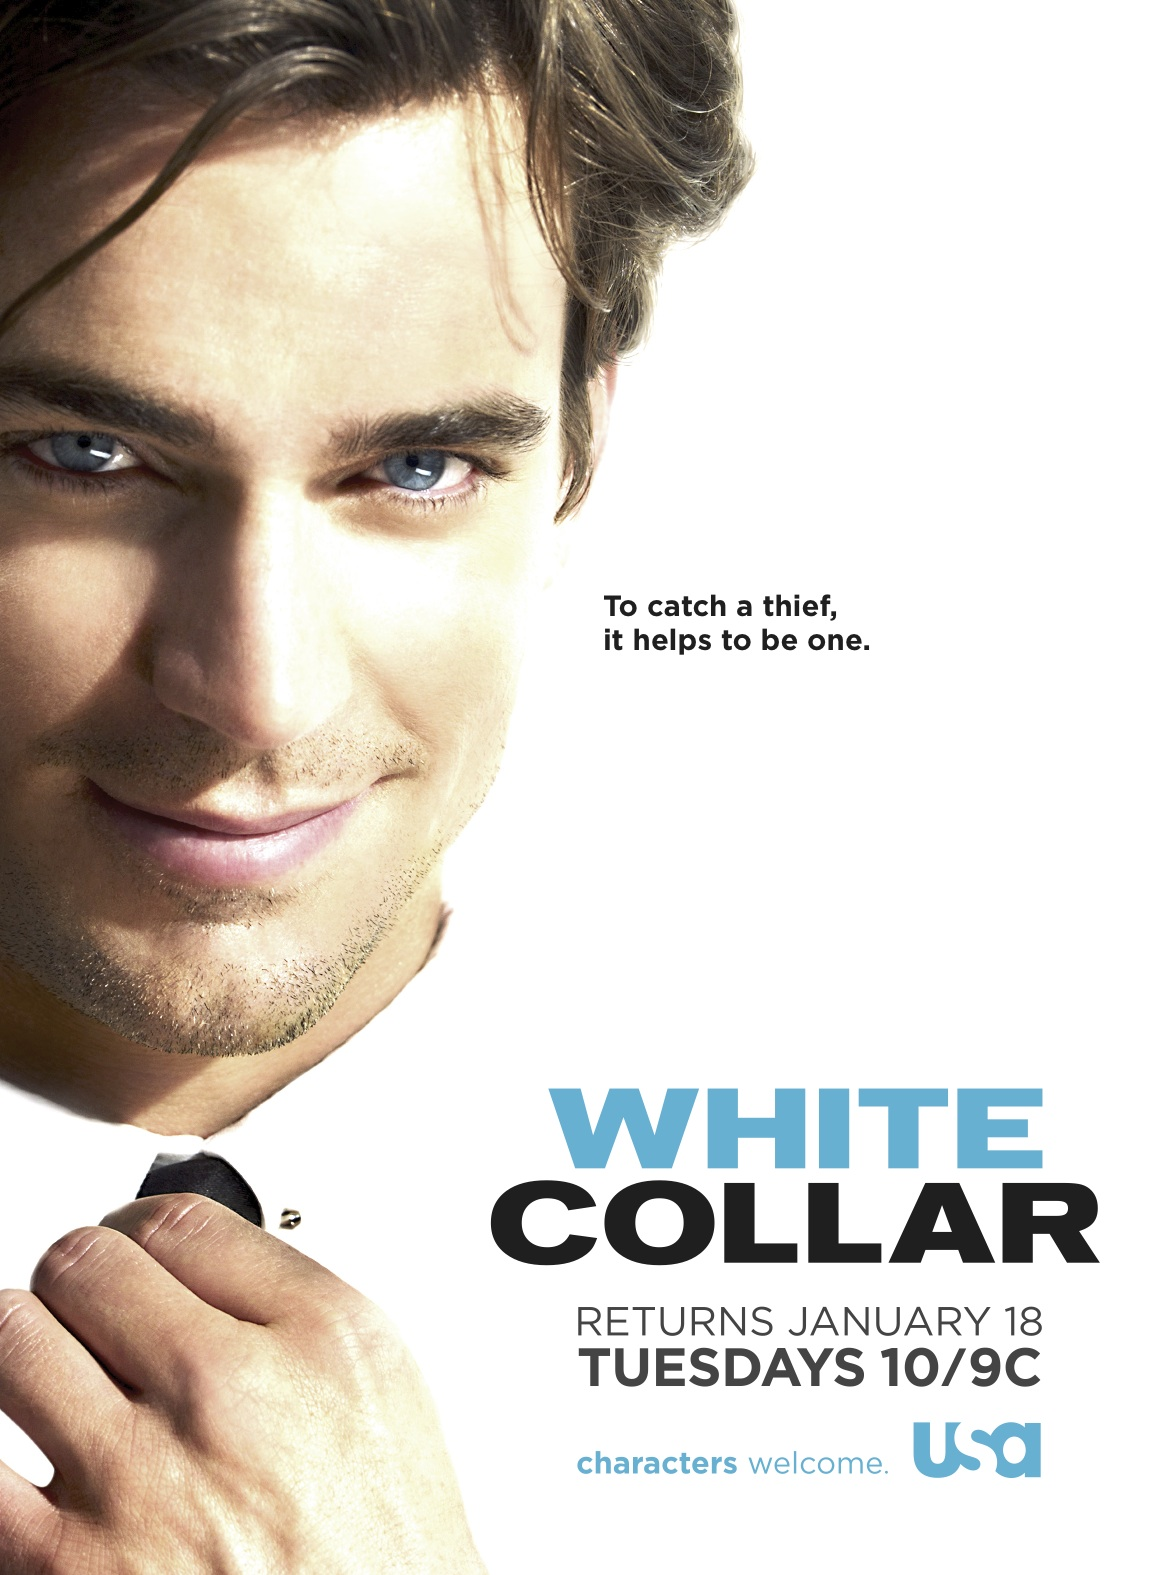 white colar crimes White collar crime, a term reportedly first coined in 1939, is synonymous with the full range of frauds committed by business and government professionals.